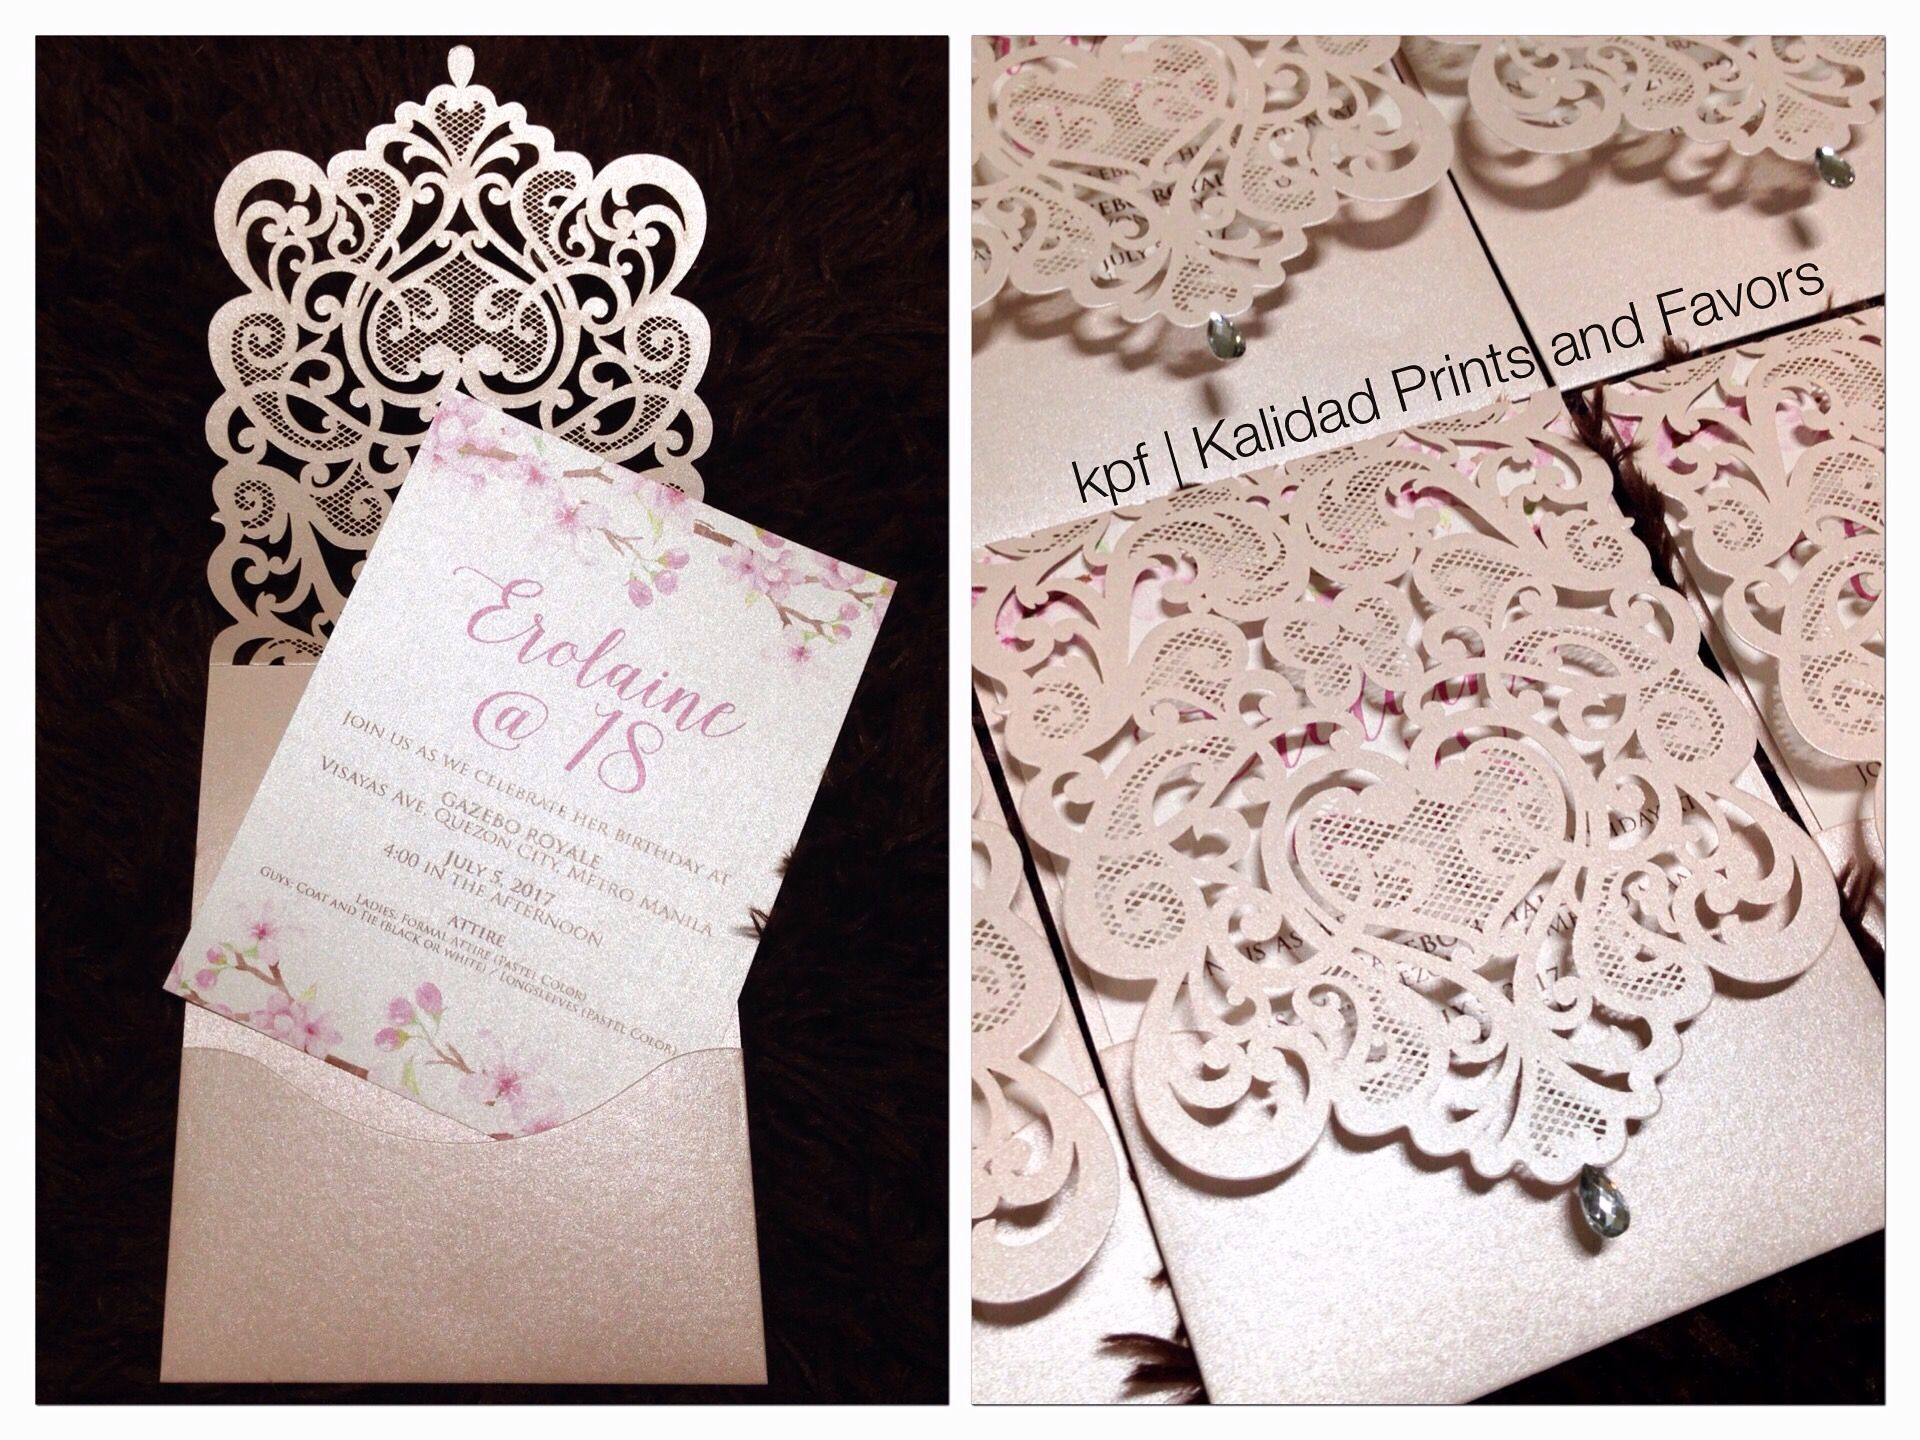 Laser cut debut invitation cherryblossominvitation lasercut laser cut debut invitation cherryblossominvitation lasercut lasercutinvitations debutinvitation birthdayinvitation cherryblossomthemedinvitation stopboris Image collections